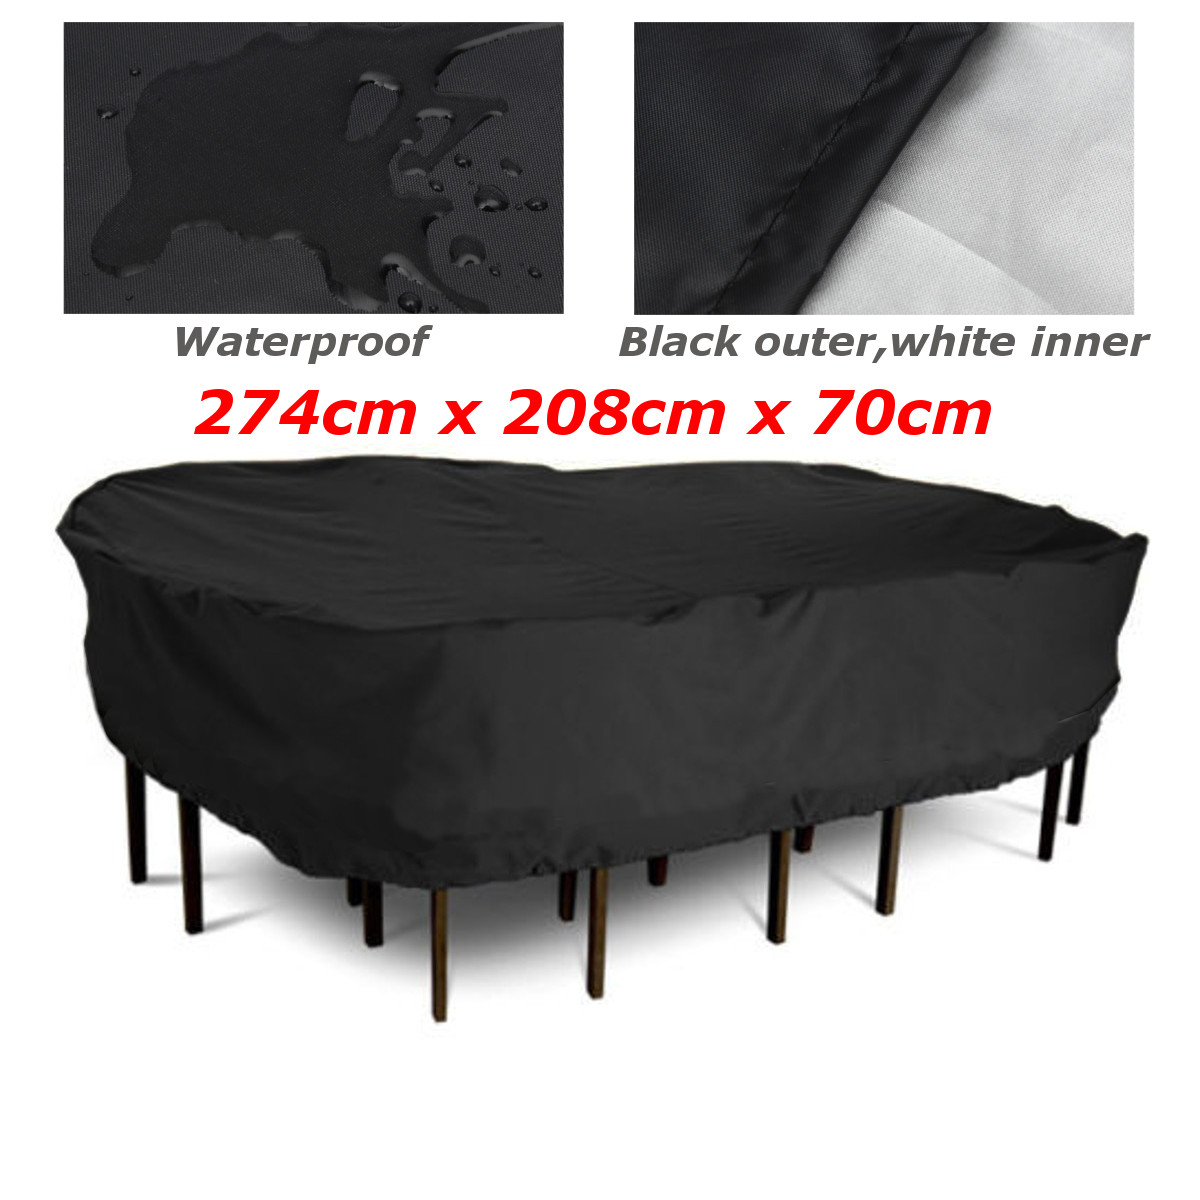 Waterproof Patio Garden Outdoor Furniture Cover Large Rectangular Table/Chair Protective Cover Table Cloth Textiles 108 Inch L